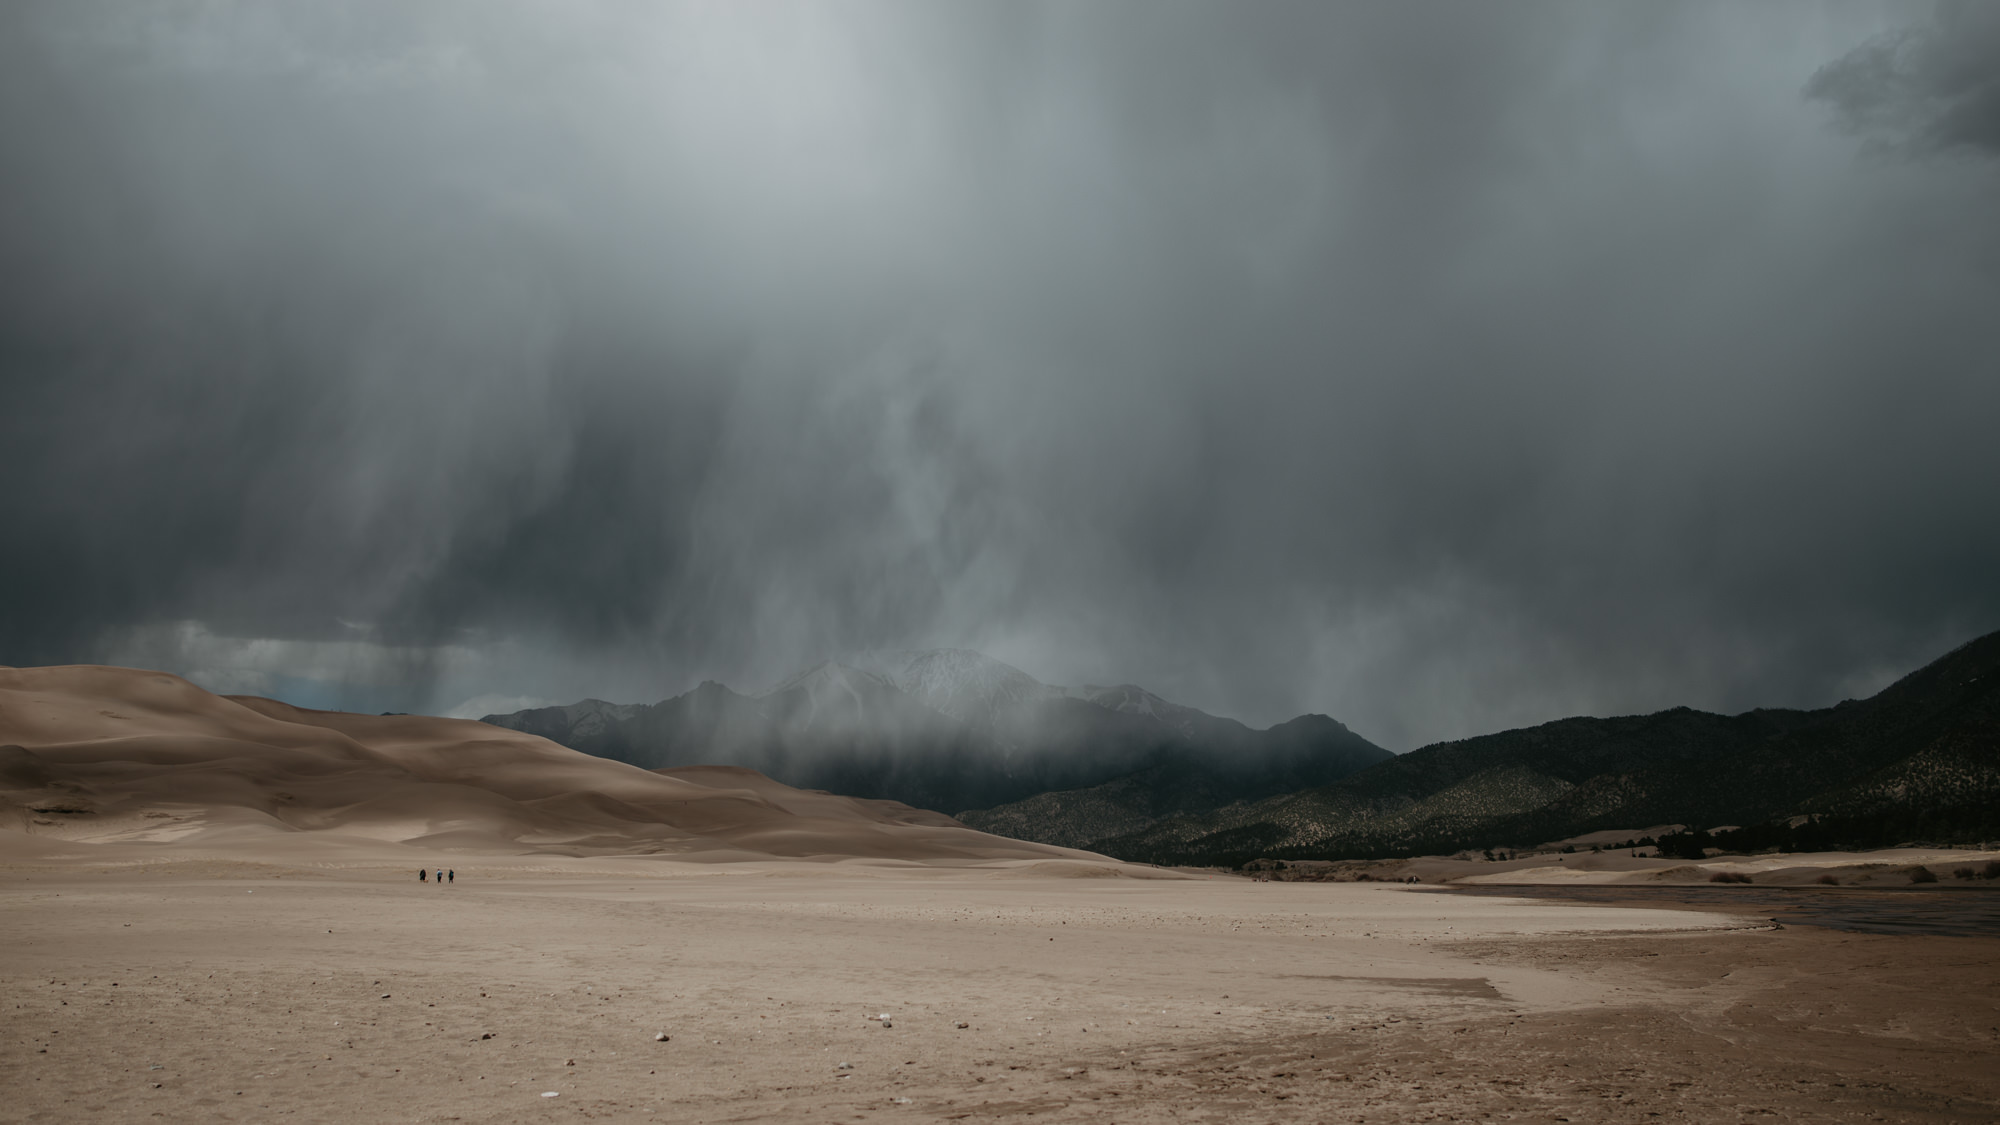 Dramatic clouds and rain over the Great Sand Dunes